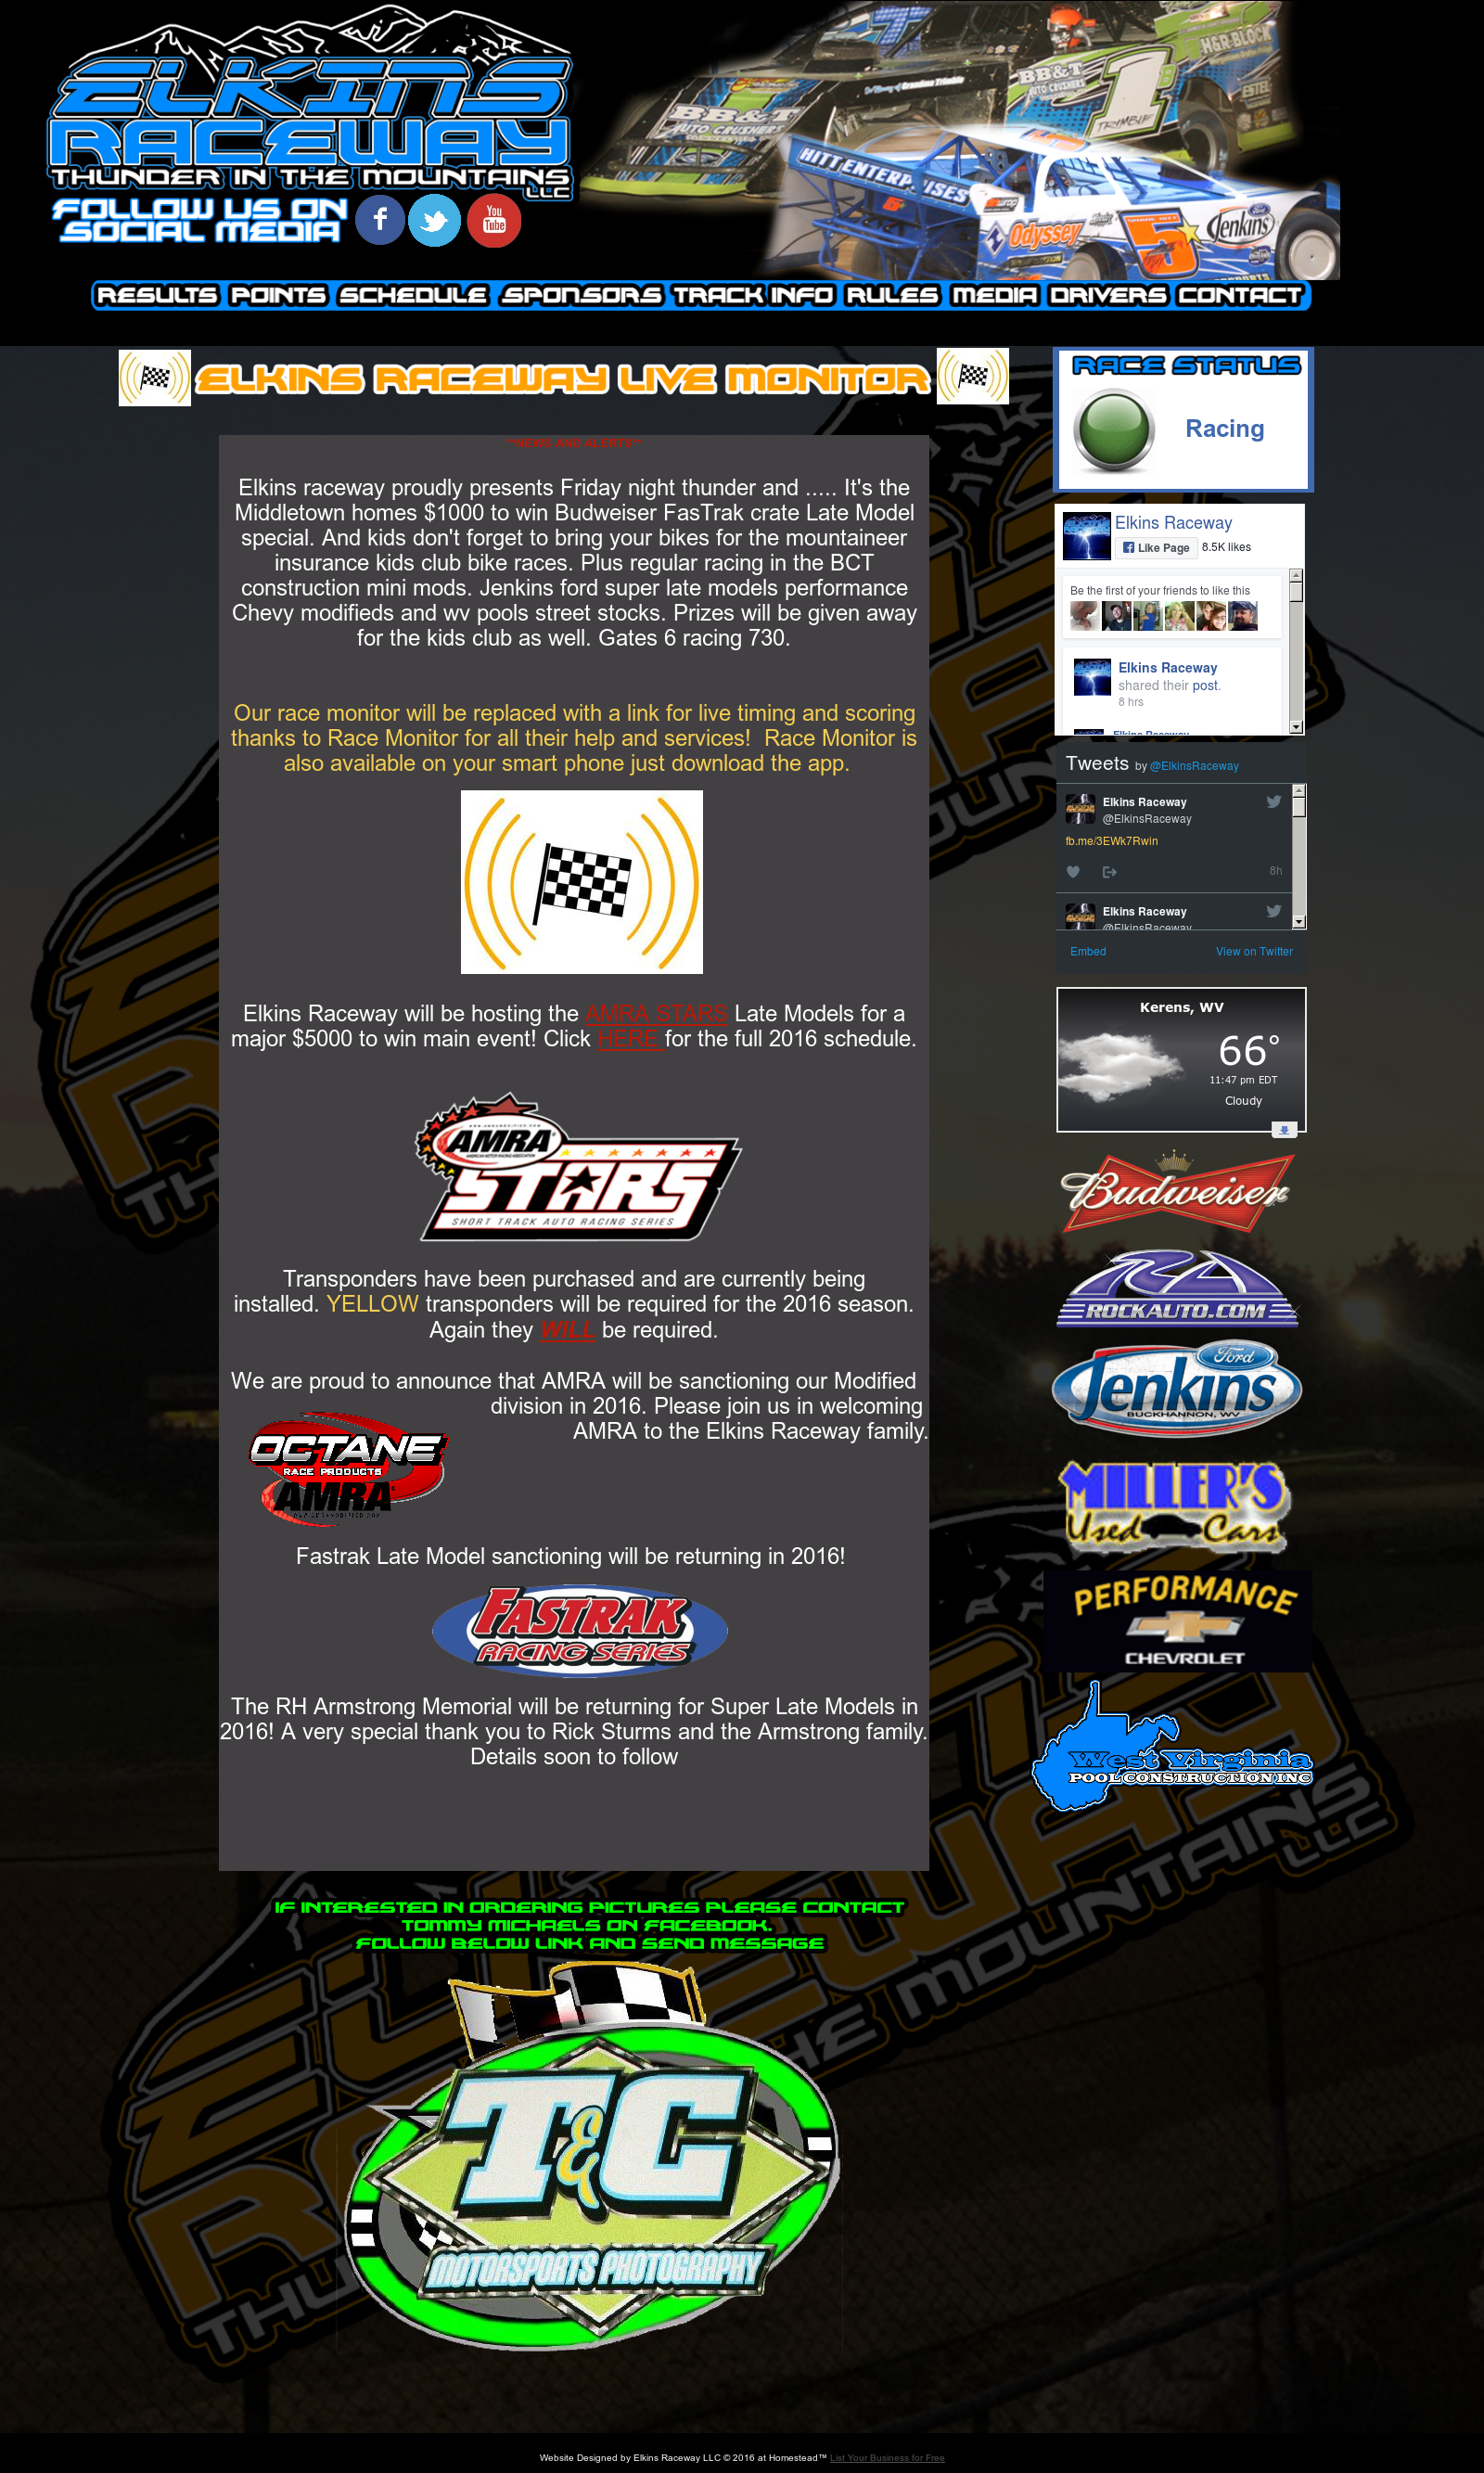 Elkins Raceway Competitors, Revenue and Employees - Owler Company